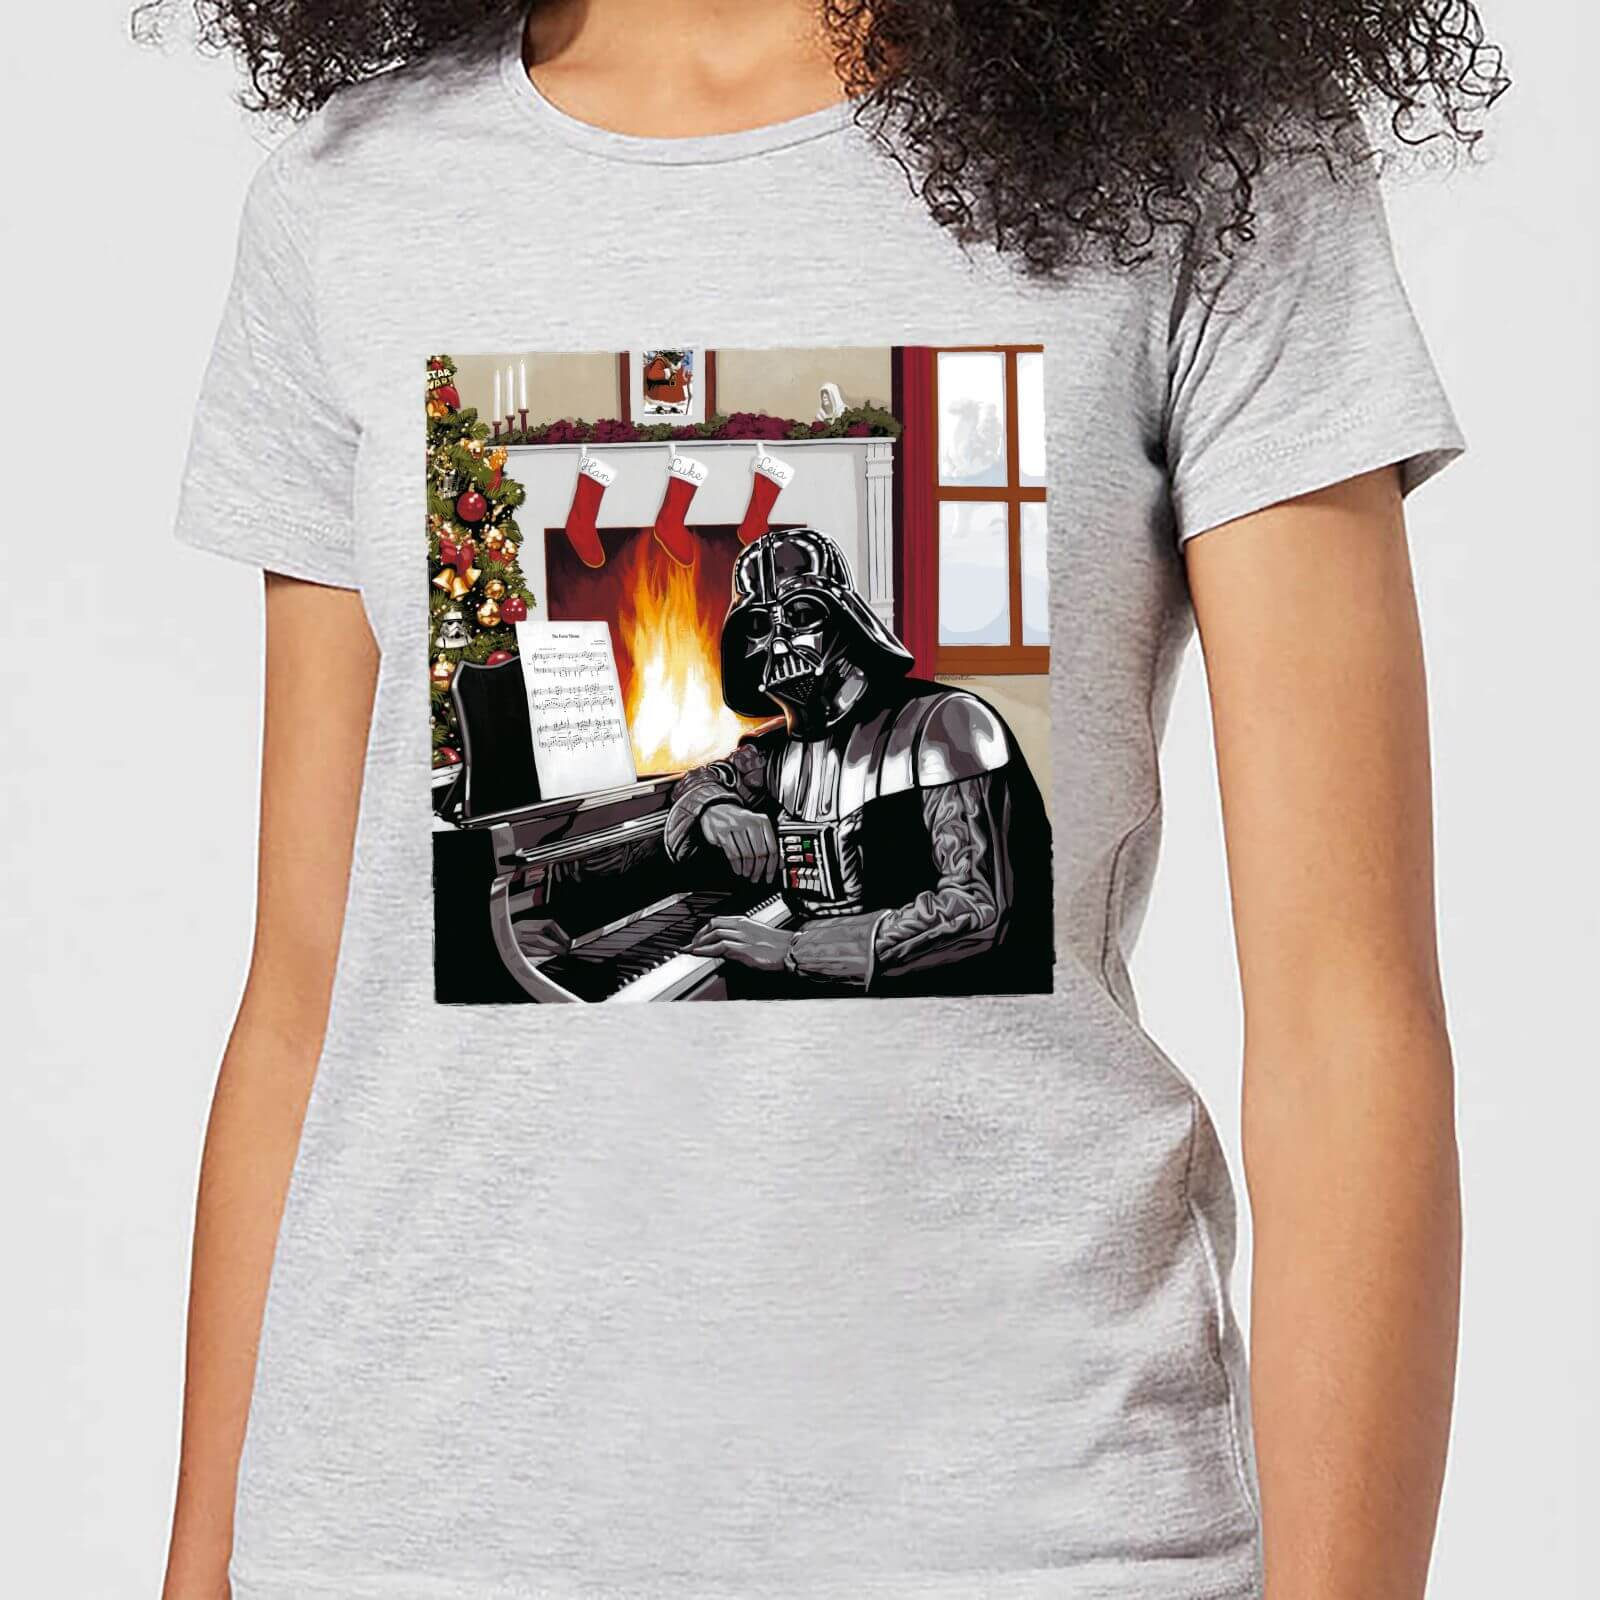 Star Wars Darth Vader Piano Player Women's Christmas T-Shirt - Grey - S - Grau von Star Wars